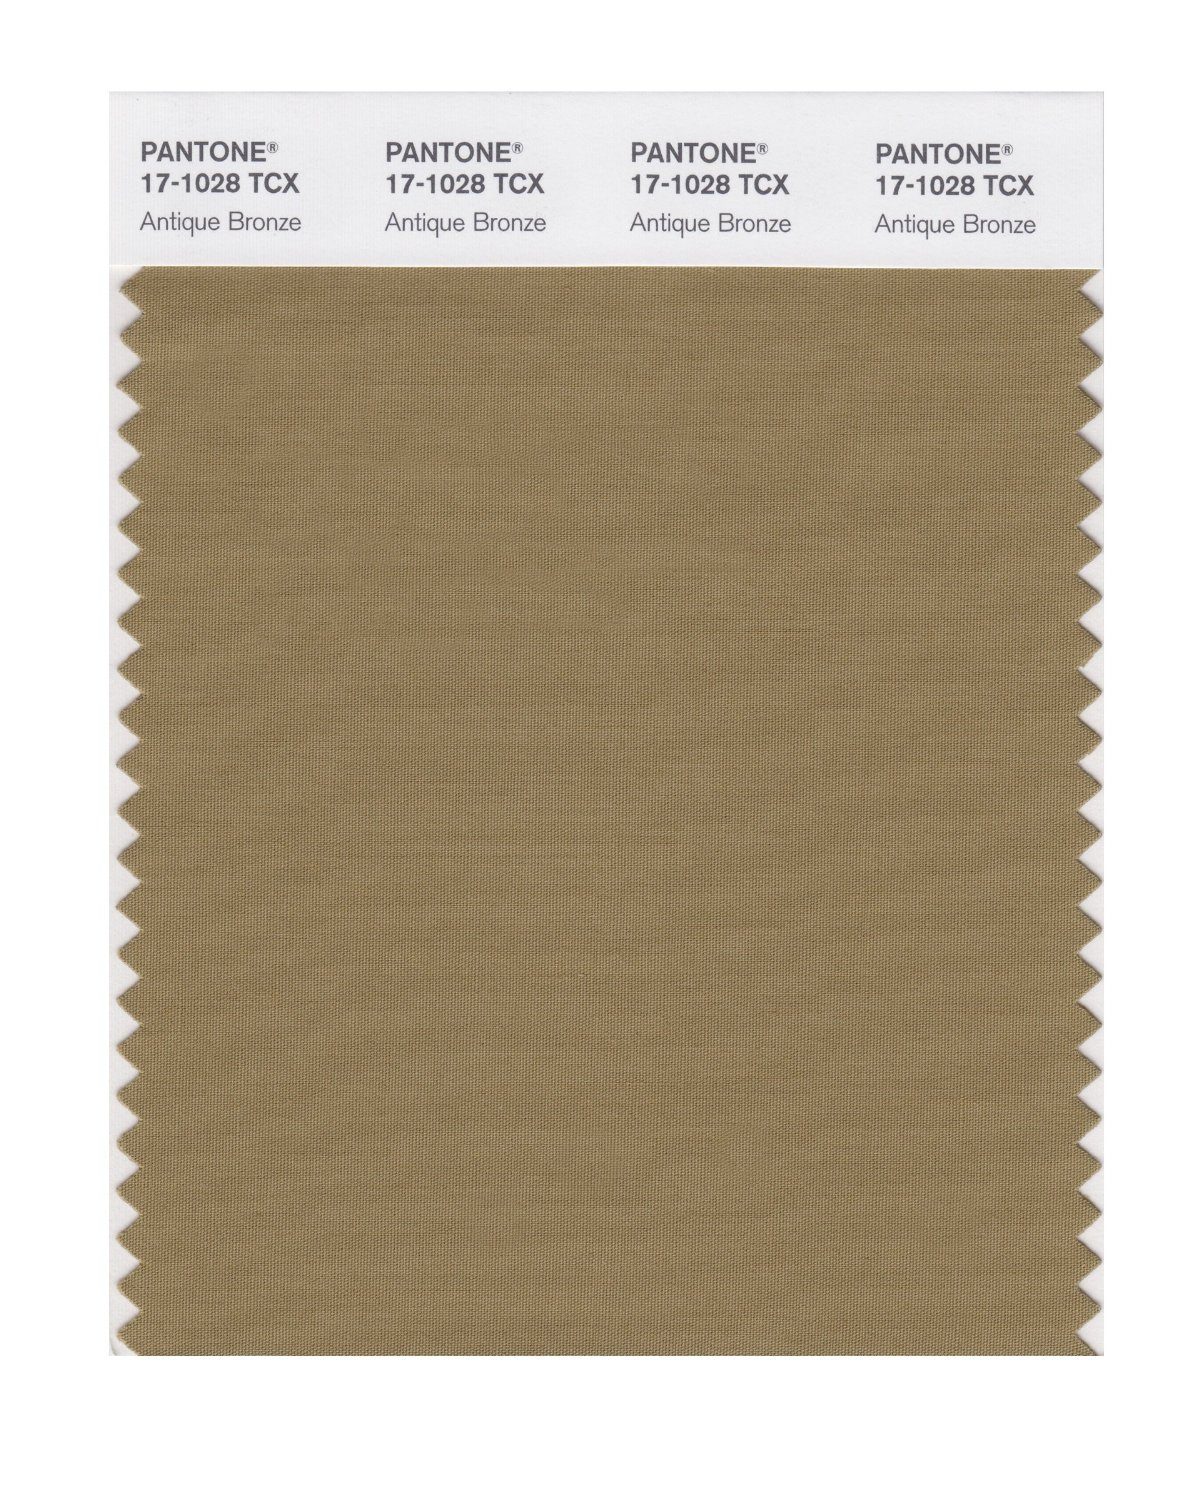 Pantone Smart Swatch 17-1028 Antique Bronze